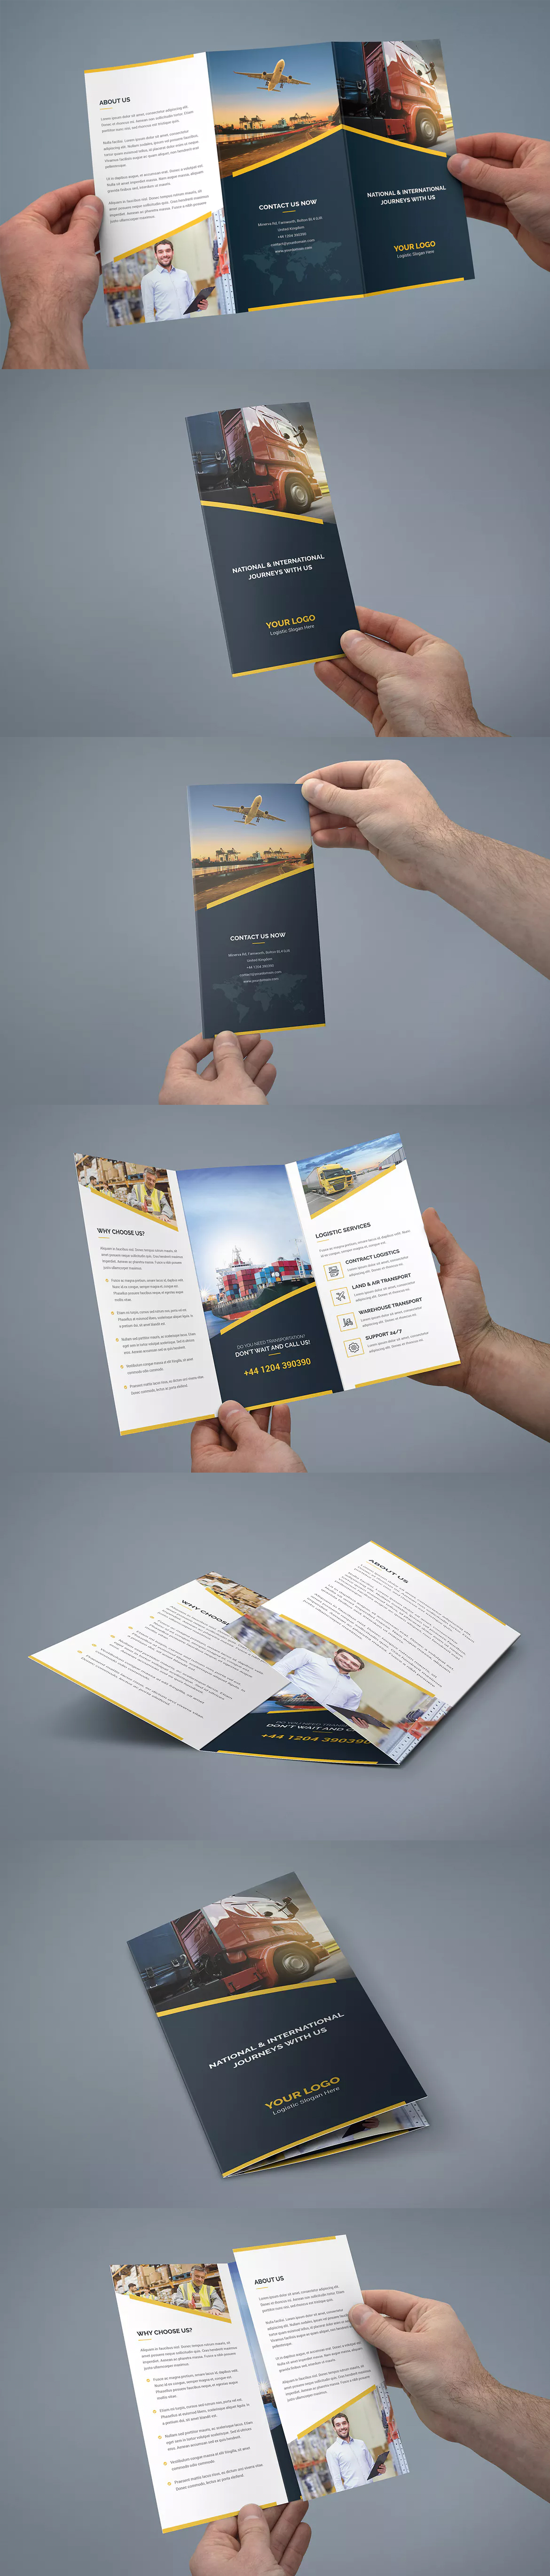 Logistic Tri-Fold Brochure Template PSD A4 and US Letter Size ...